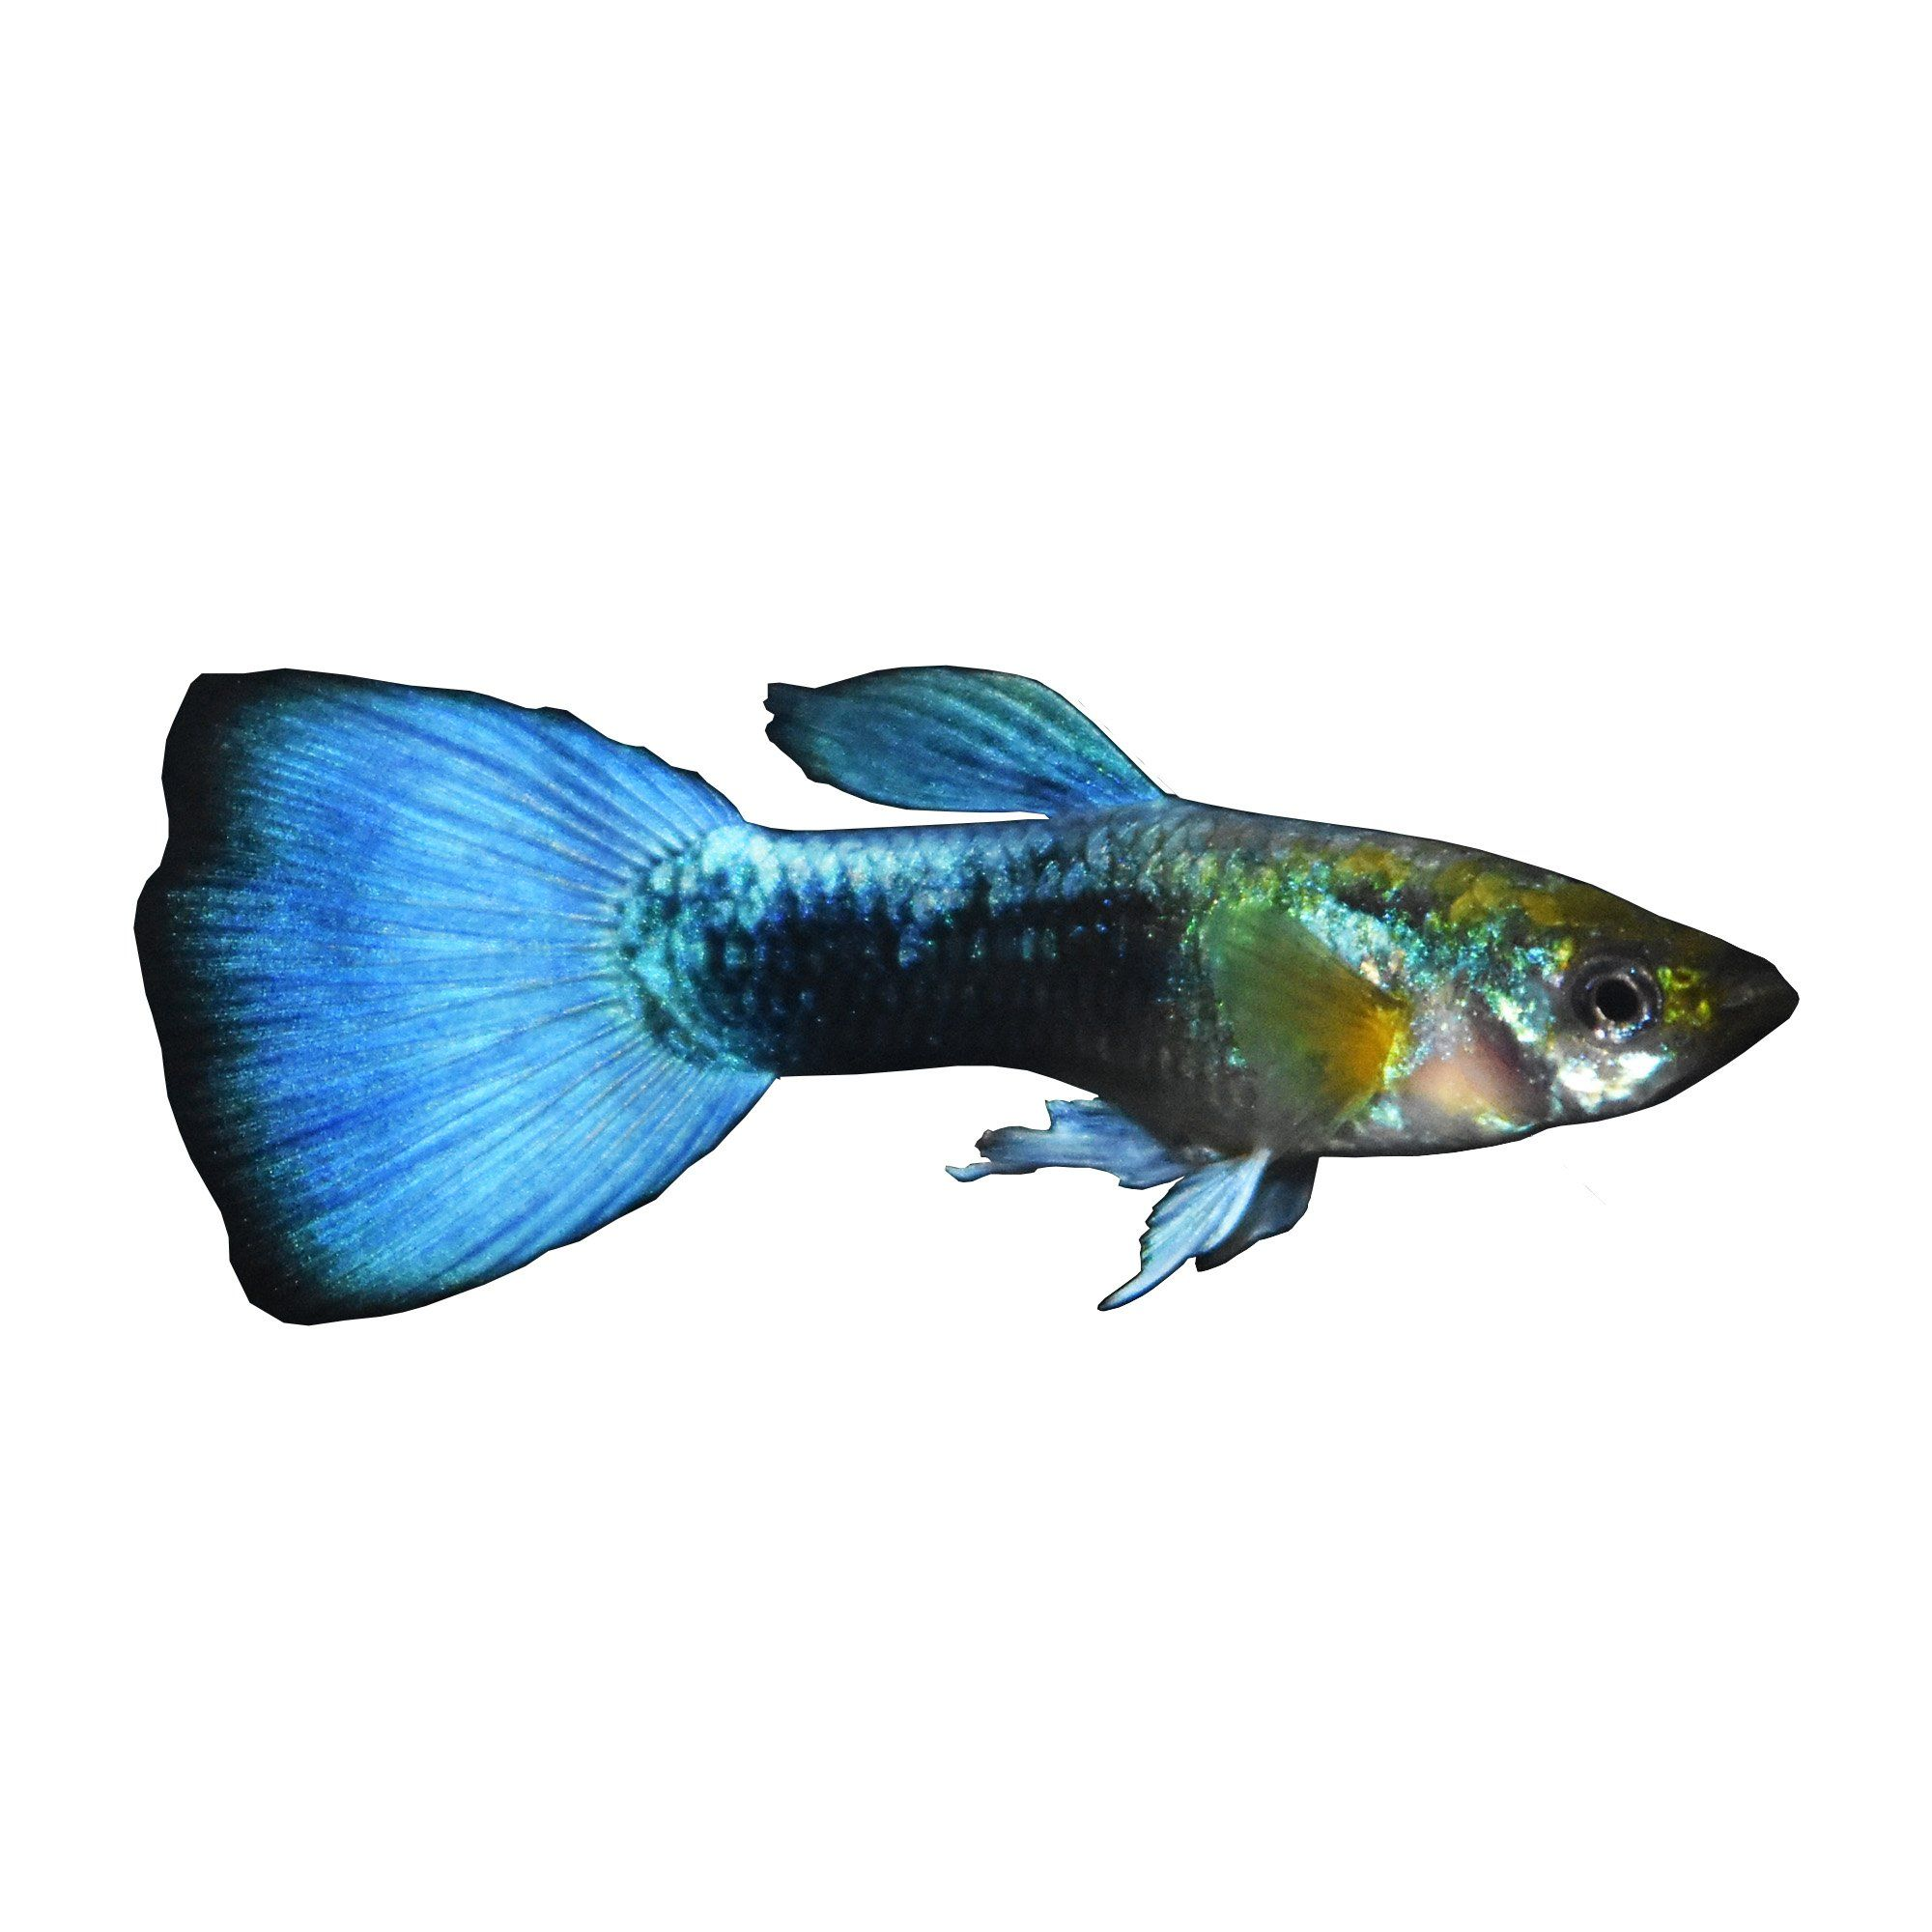 Male Blue Neon Guppies For Sale Order Online Petco Petco Guppy Fish Pet